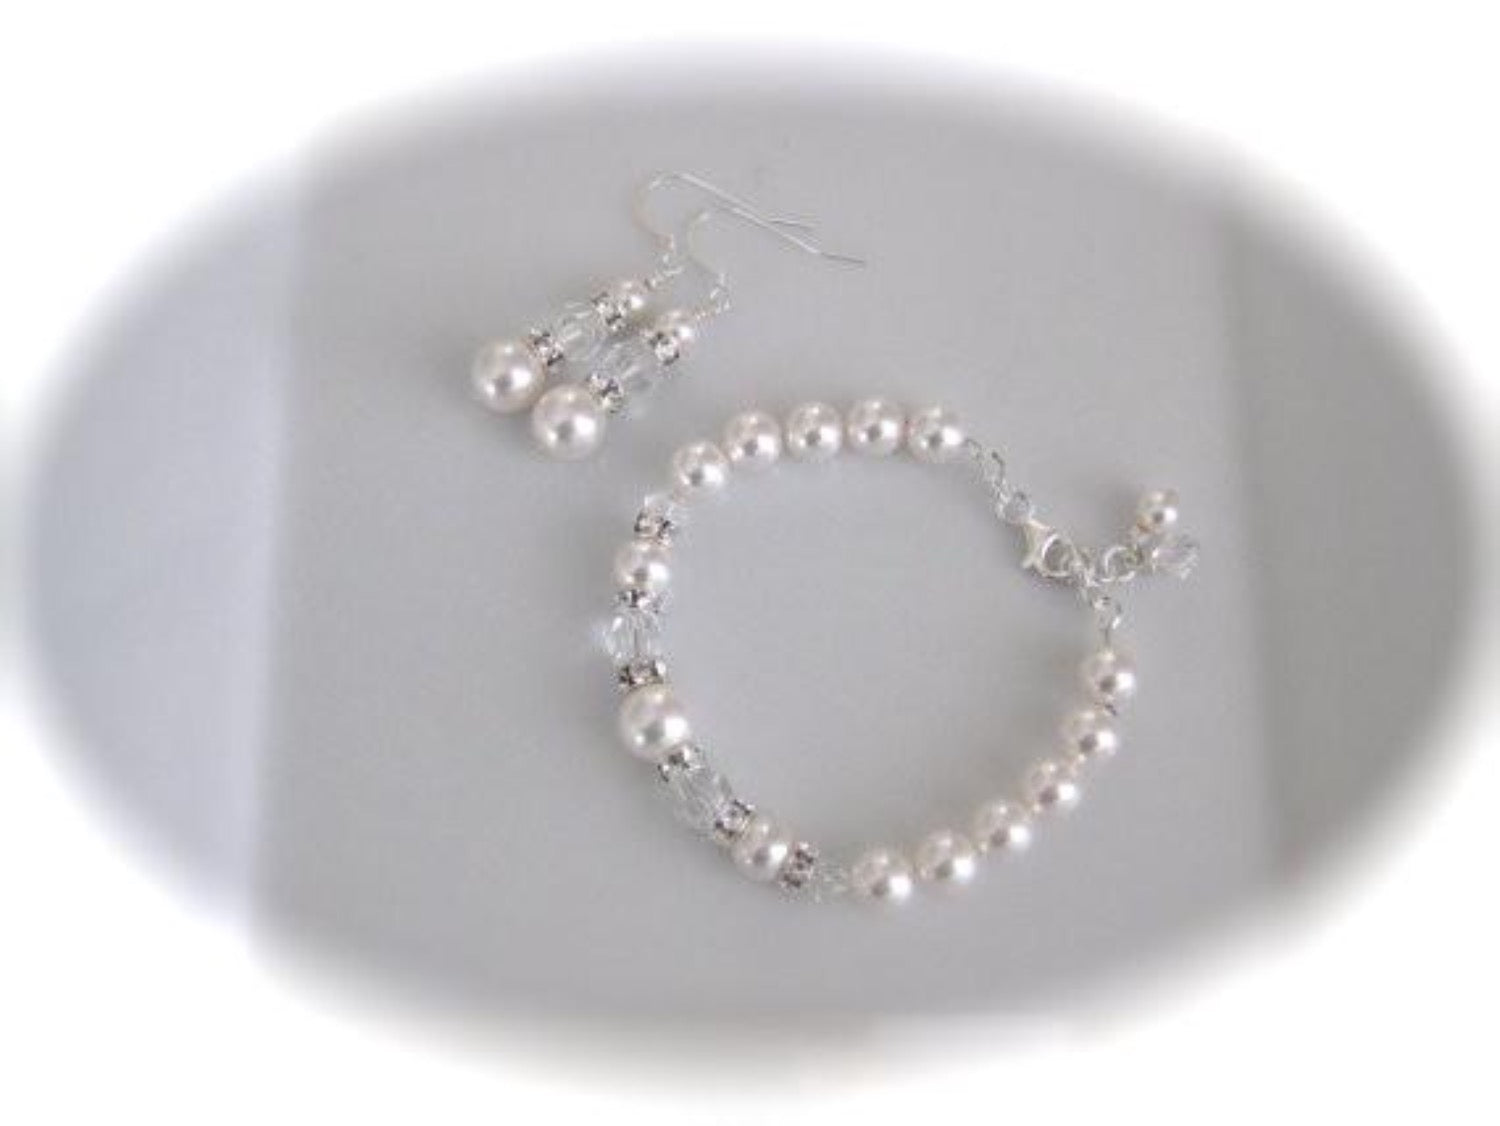 White pearl and crystal bracelet and earrings made with Swarovski elements - Clairesbridal - 2